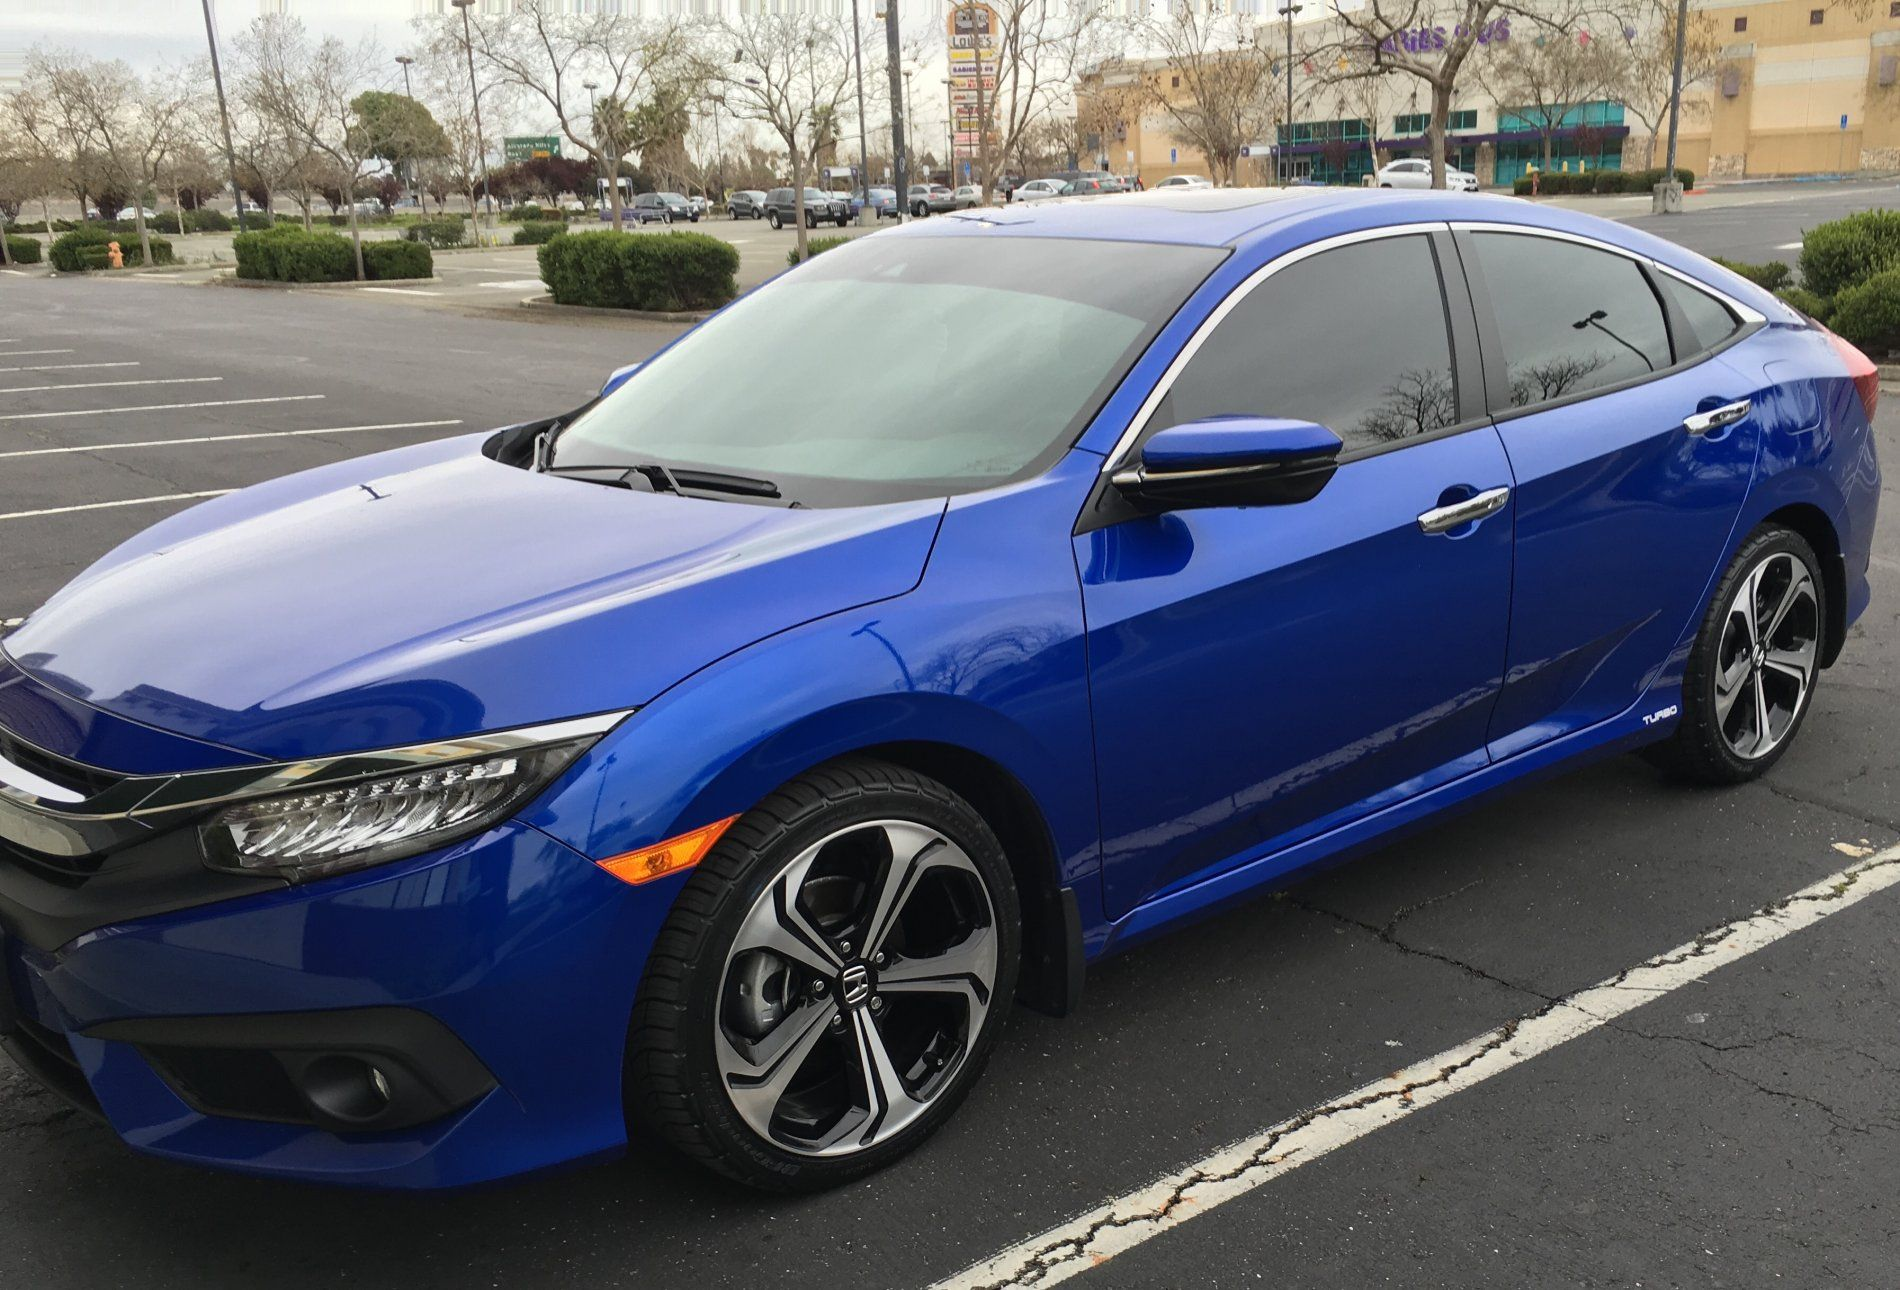 2016 Civic Honda civic, Honda